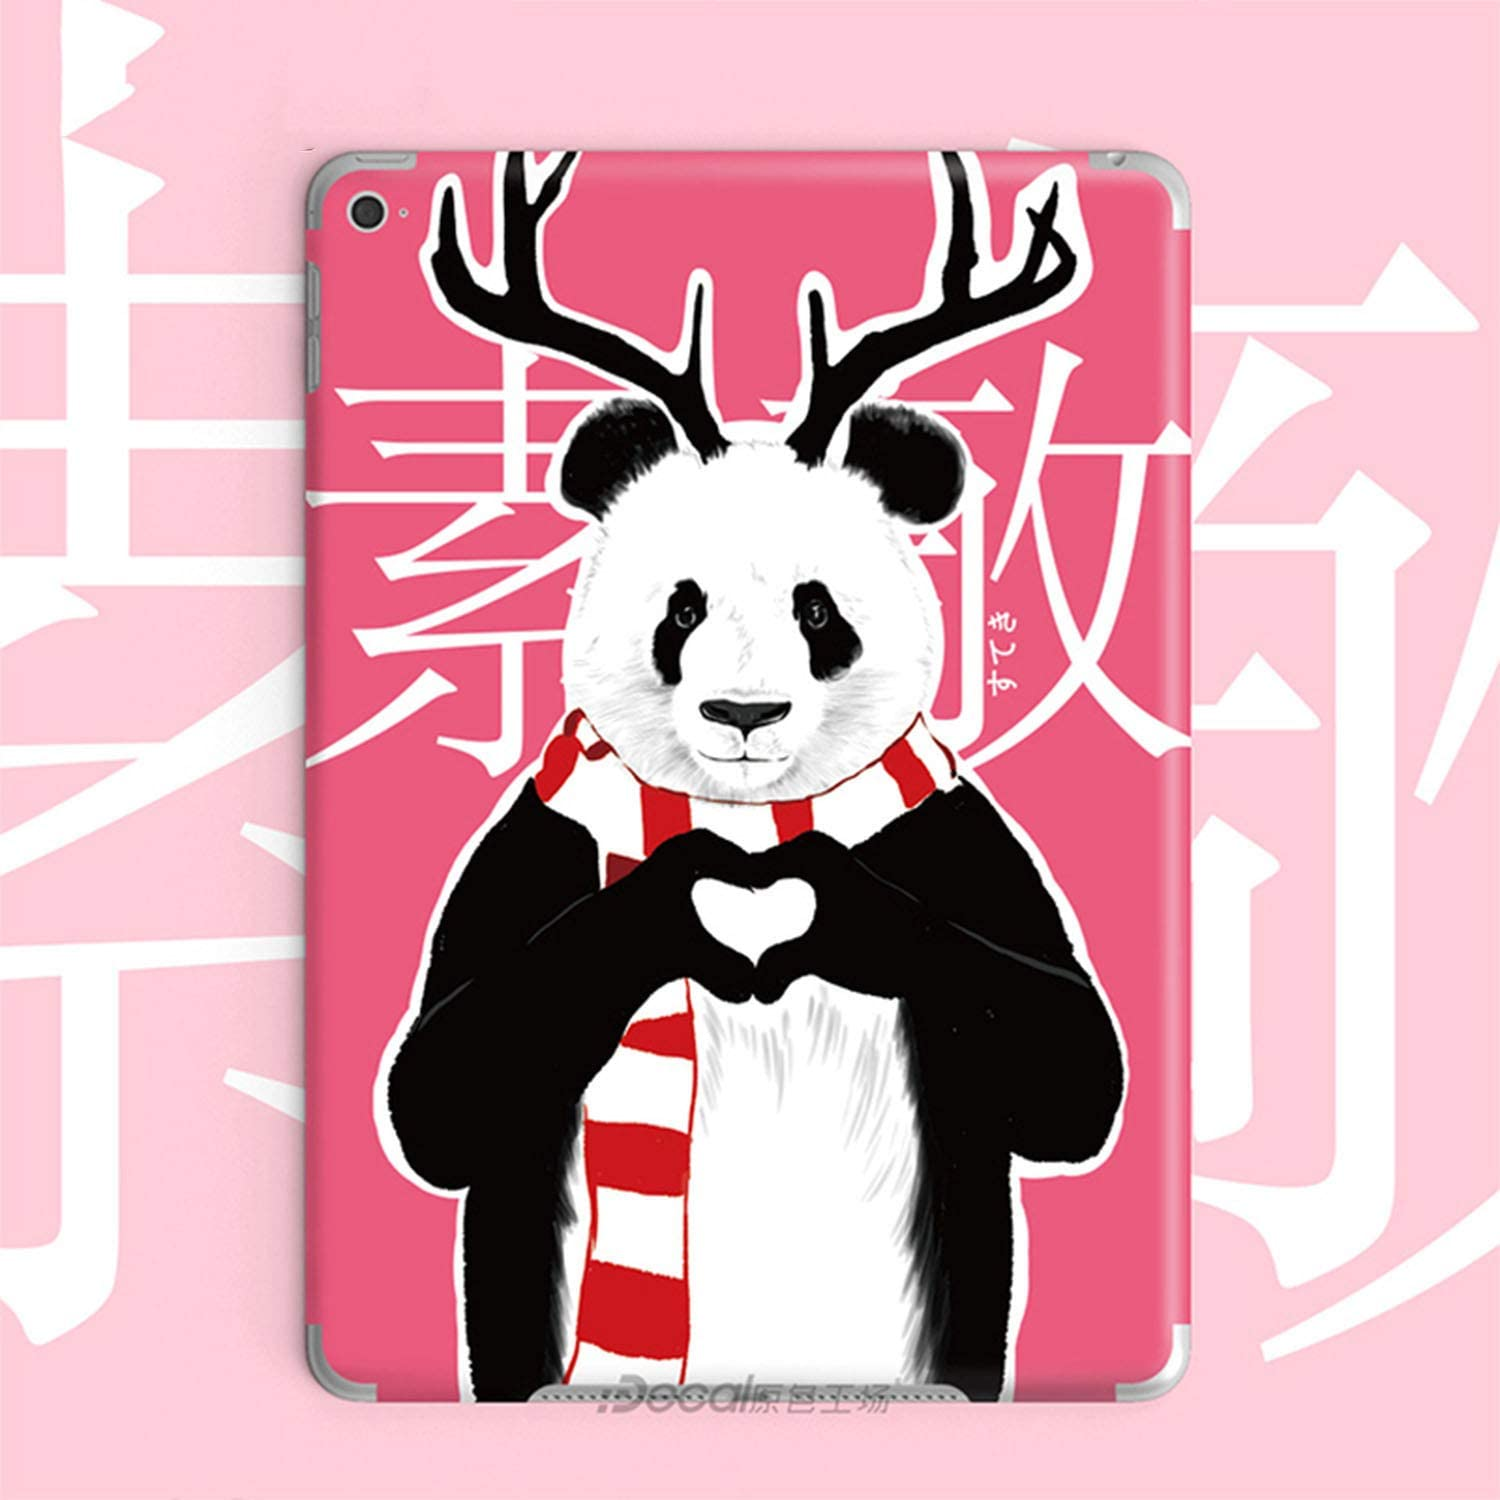 Skin Shell Protect Sticker Film Cover for Apple ipad Mini pro 9.7 //for Air//for Air2 Sticker For2017 2018 New for ipad Anti-Scratch Membrane-Red-for ipad pro 9.7